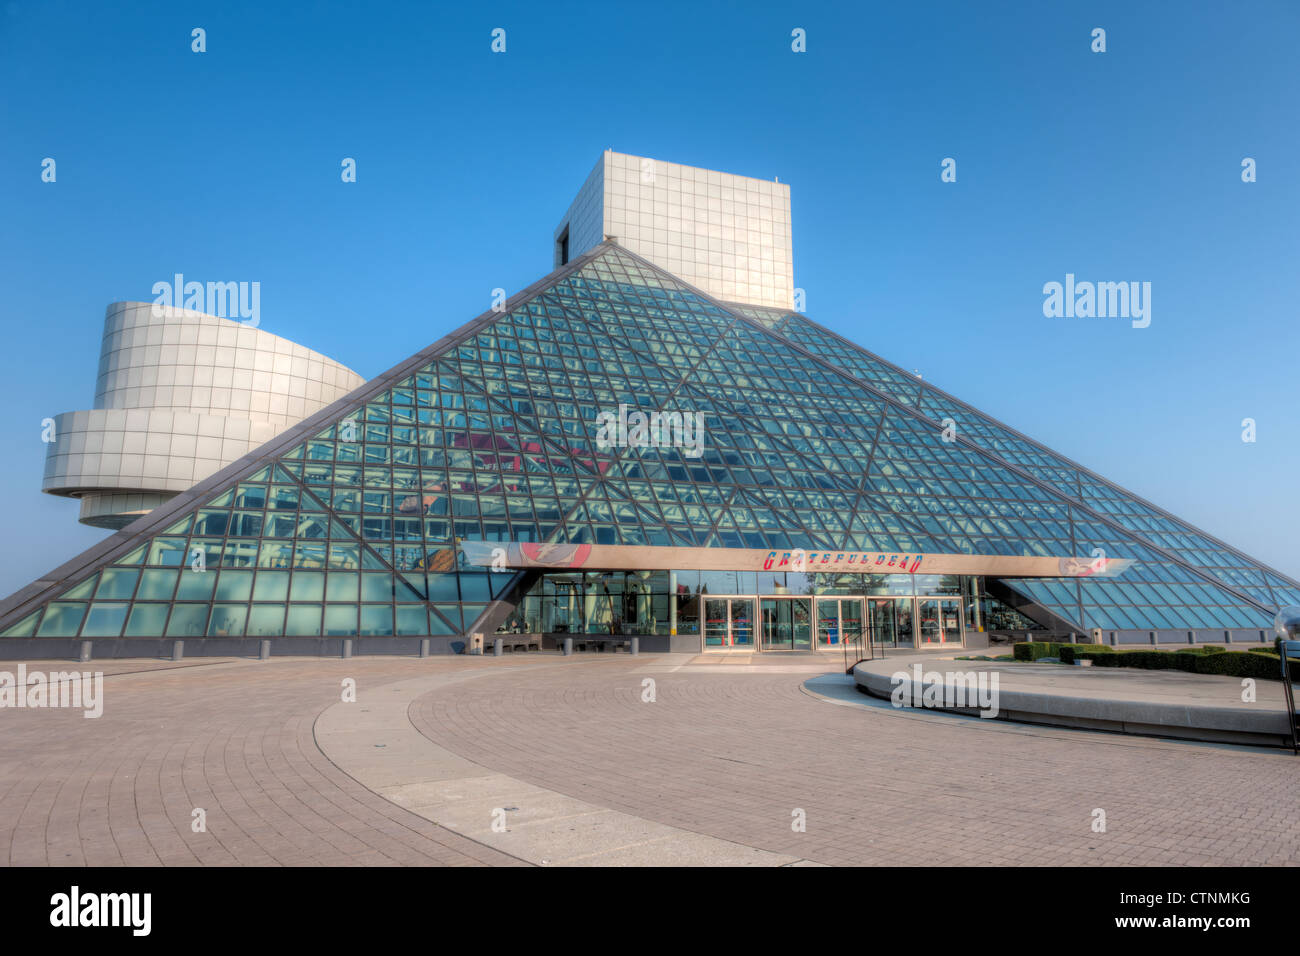 Die Rock And Roll Hall Of Fame in Cleveland, Ohio. Stockbild